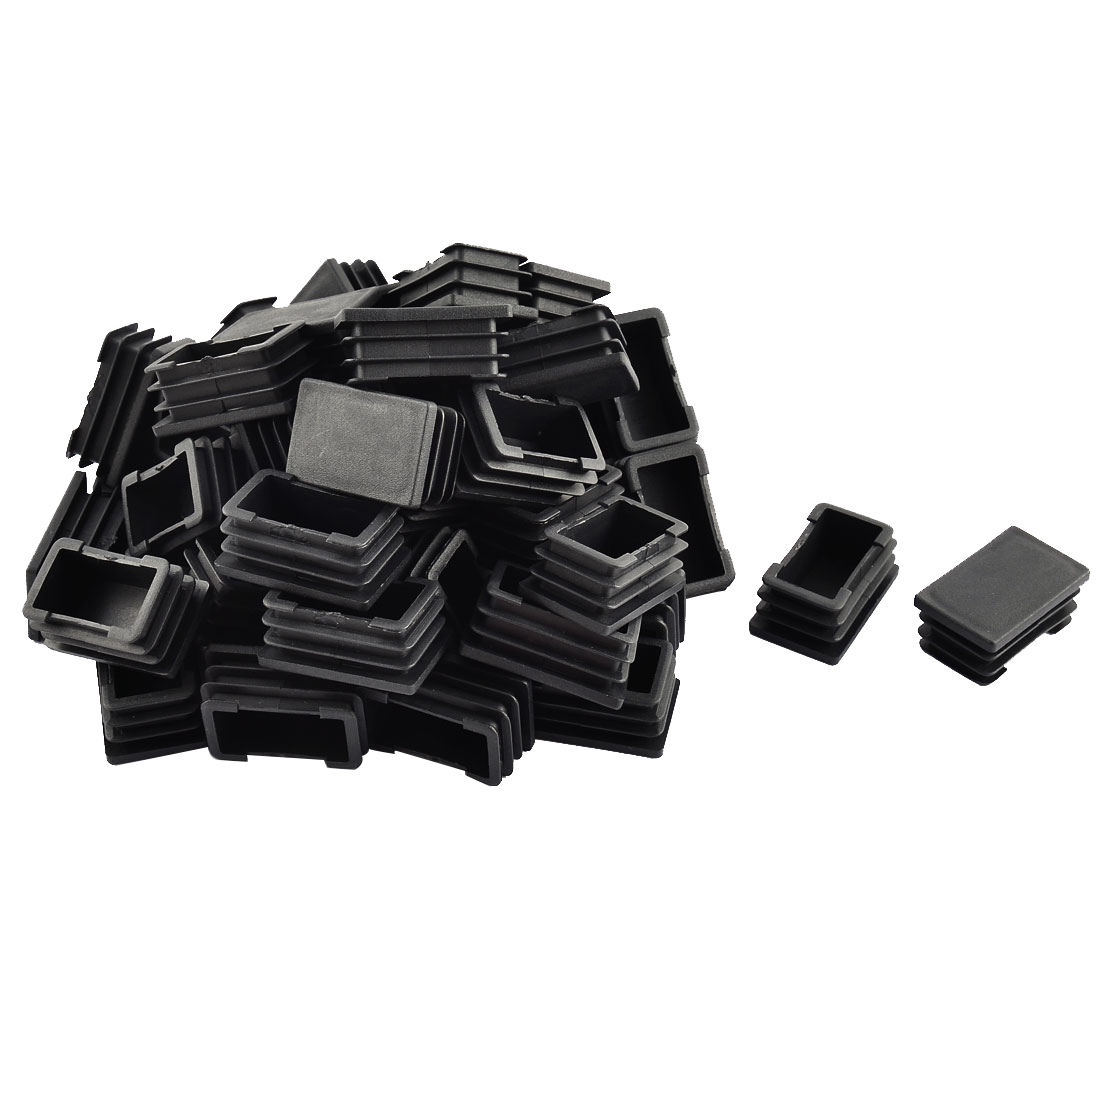 Floor No Scratch Protect Chair Leg Pipe Tube Insert Cover Black 39 x 24mm 50pcs